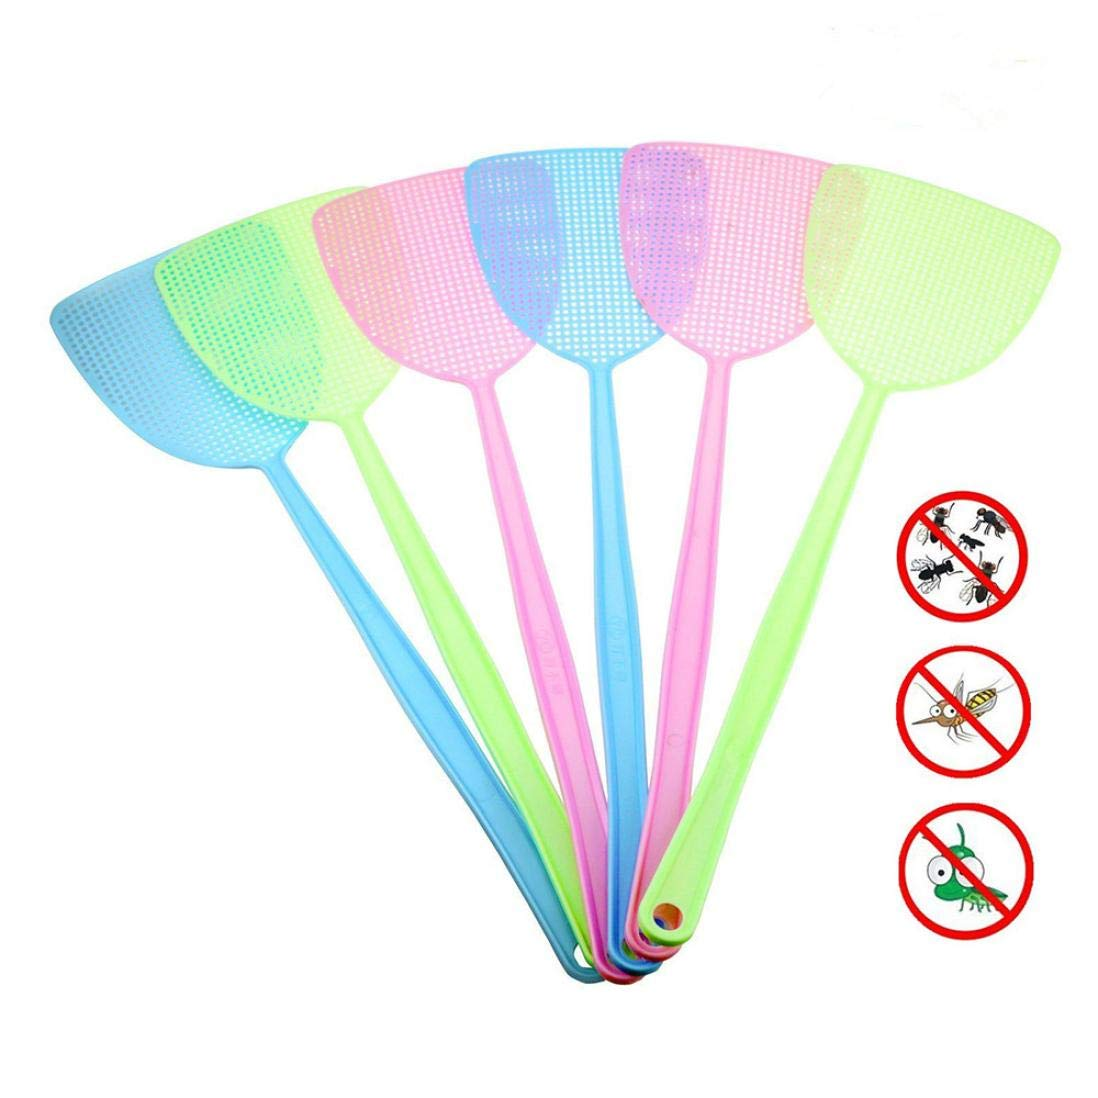 Plastic Manual Swat Pest Control Fly Swatters Heavy Duty Insects Spiders Inkach Flyswatter Blue Bugs Fly Killer